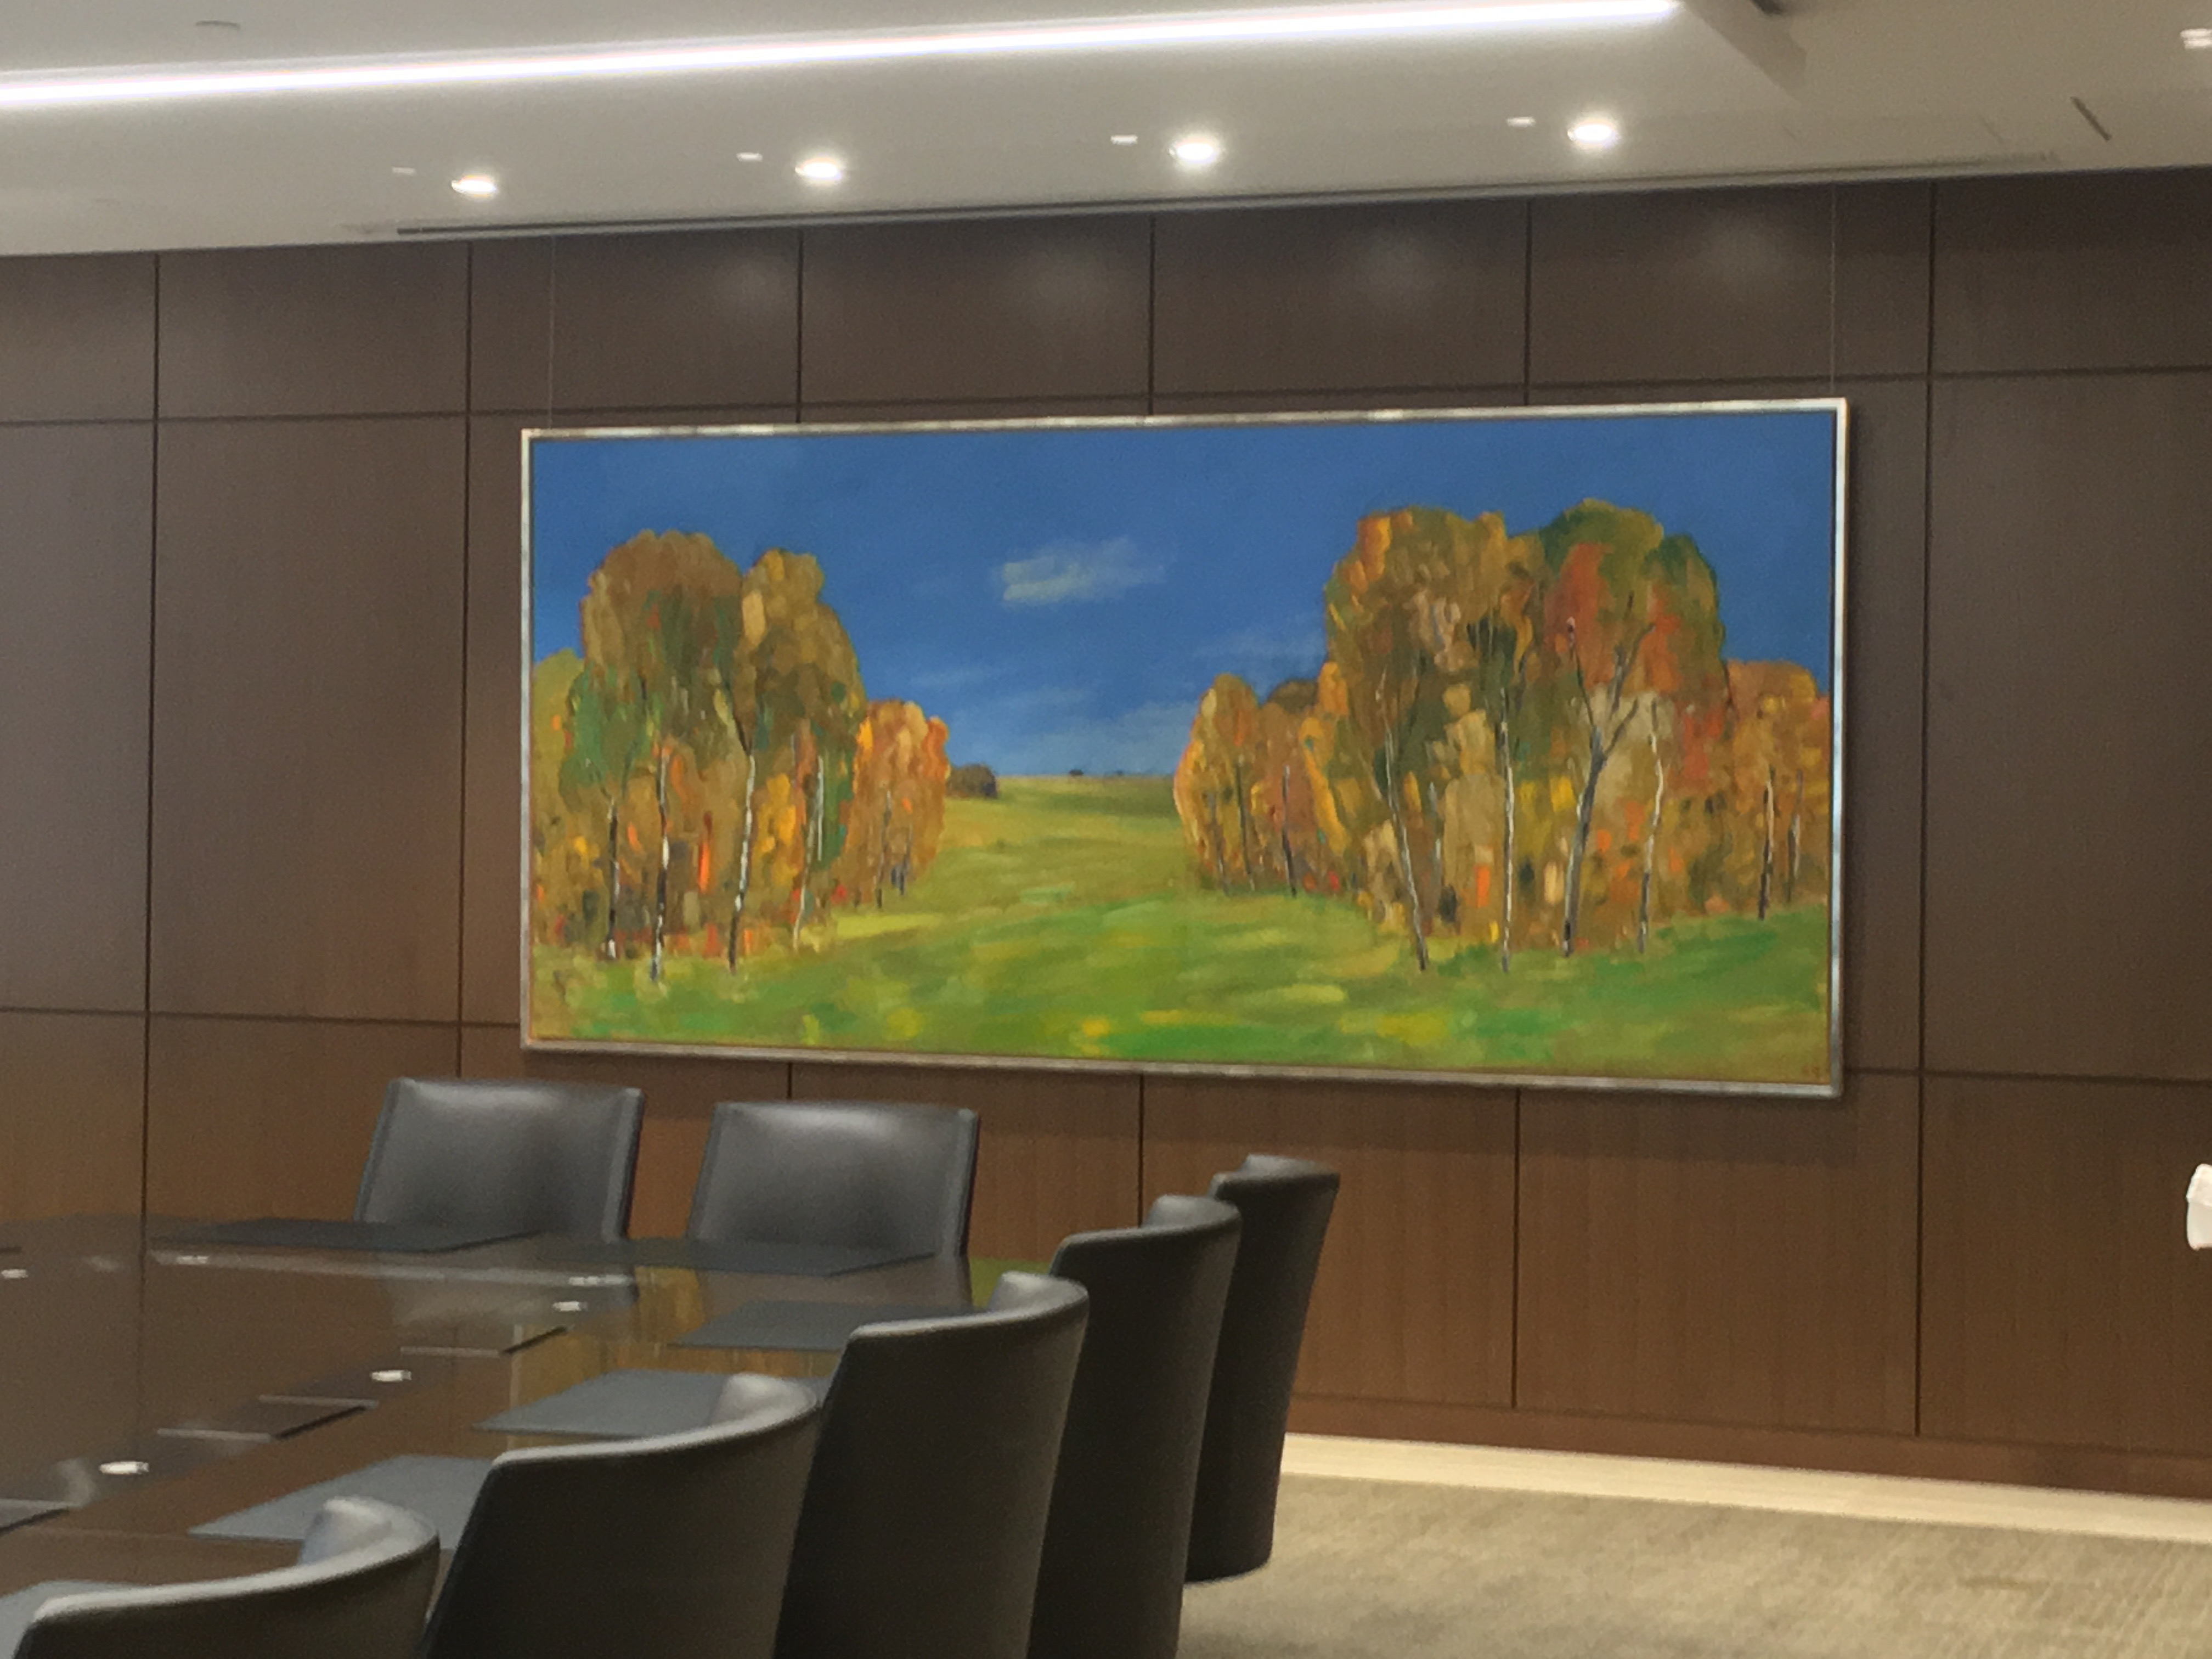 11 Passage 2016 acrylic on canvas 66_ x 144_ Scotiabank Conference Centre Boardroom Toronto